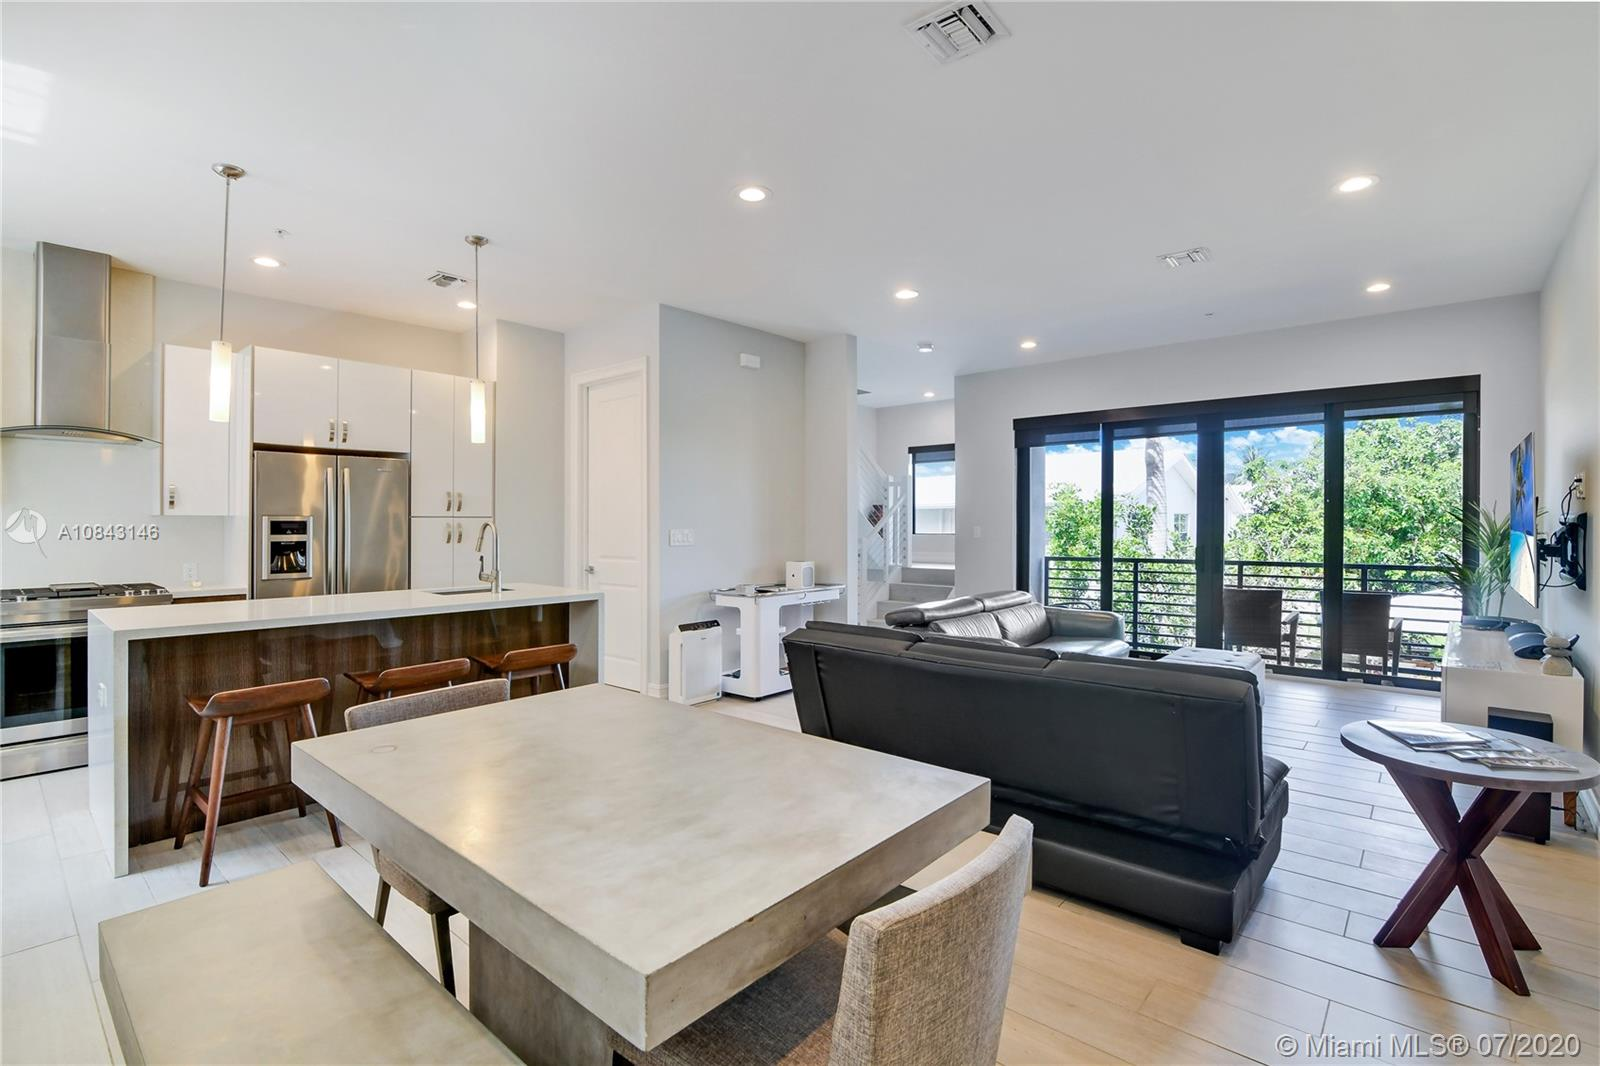 Excellent 3 story furnished smart home ready to move-in! This 2018 constructed townhome features 3.5 bathrooms, 3 bedrooms within 1,916 sq ft. Interior includes custom laminated lacquer cabinetry, high-end Jenn-Aire appliances, quartz tops in kitchen and bathroom, plus tile flooring throughout the home. There is also a double garage, Kevo keyless entry system and private fenced yard with balcony. The listing price includes all furniture and electronics including stainless steel appliances in kitchen (fridge, microwave, oven), washer/dryer, 4 flat-panel TVs with soundbars, 2 queen beds, 2 sofa beds, dining table (for six people), accent furniture and everything a home needs to live in comfort! Smart home has wireless light switches, Wifi controlled garage door and Ecobee smart thermostat.